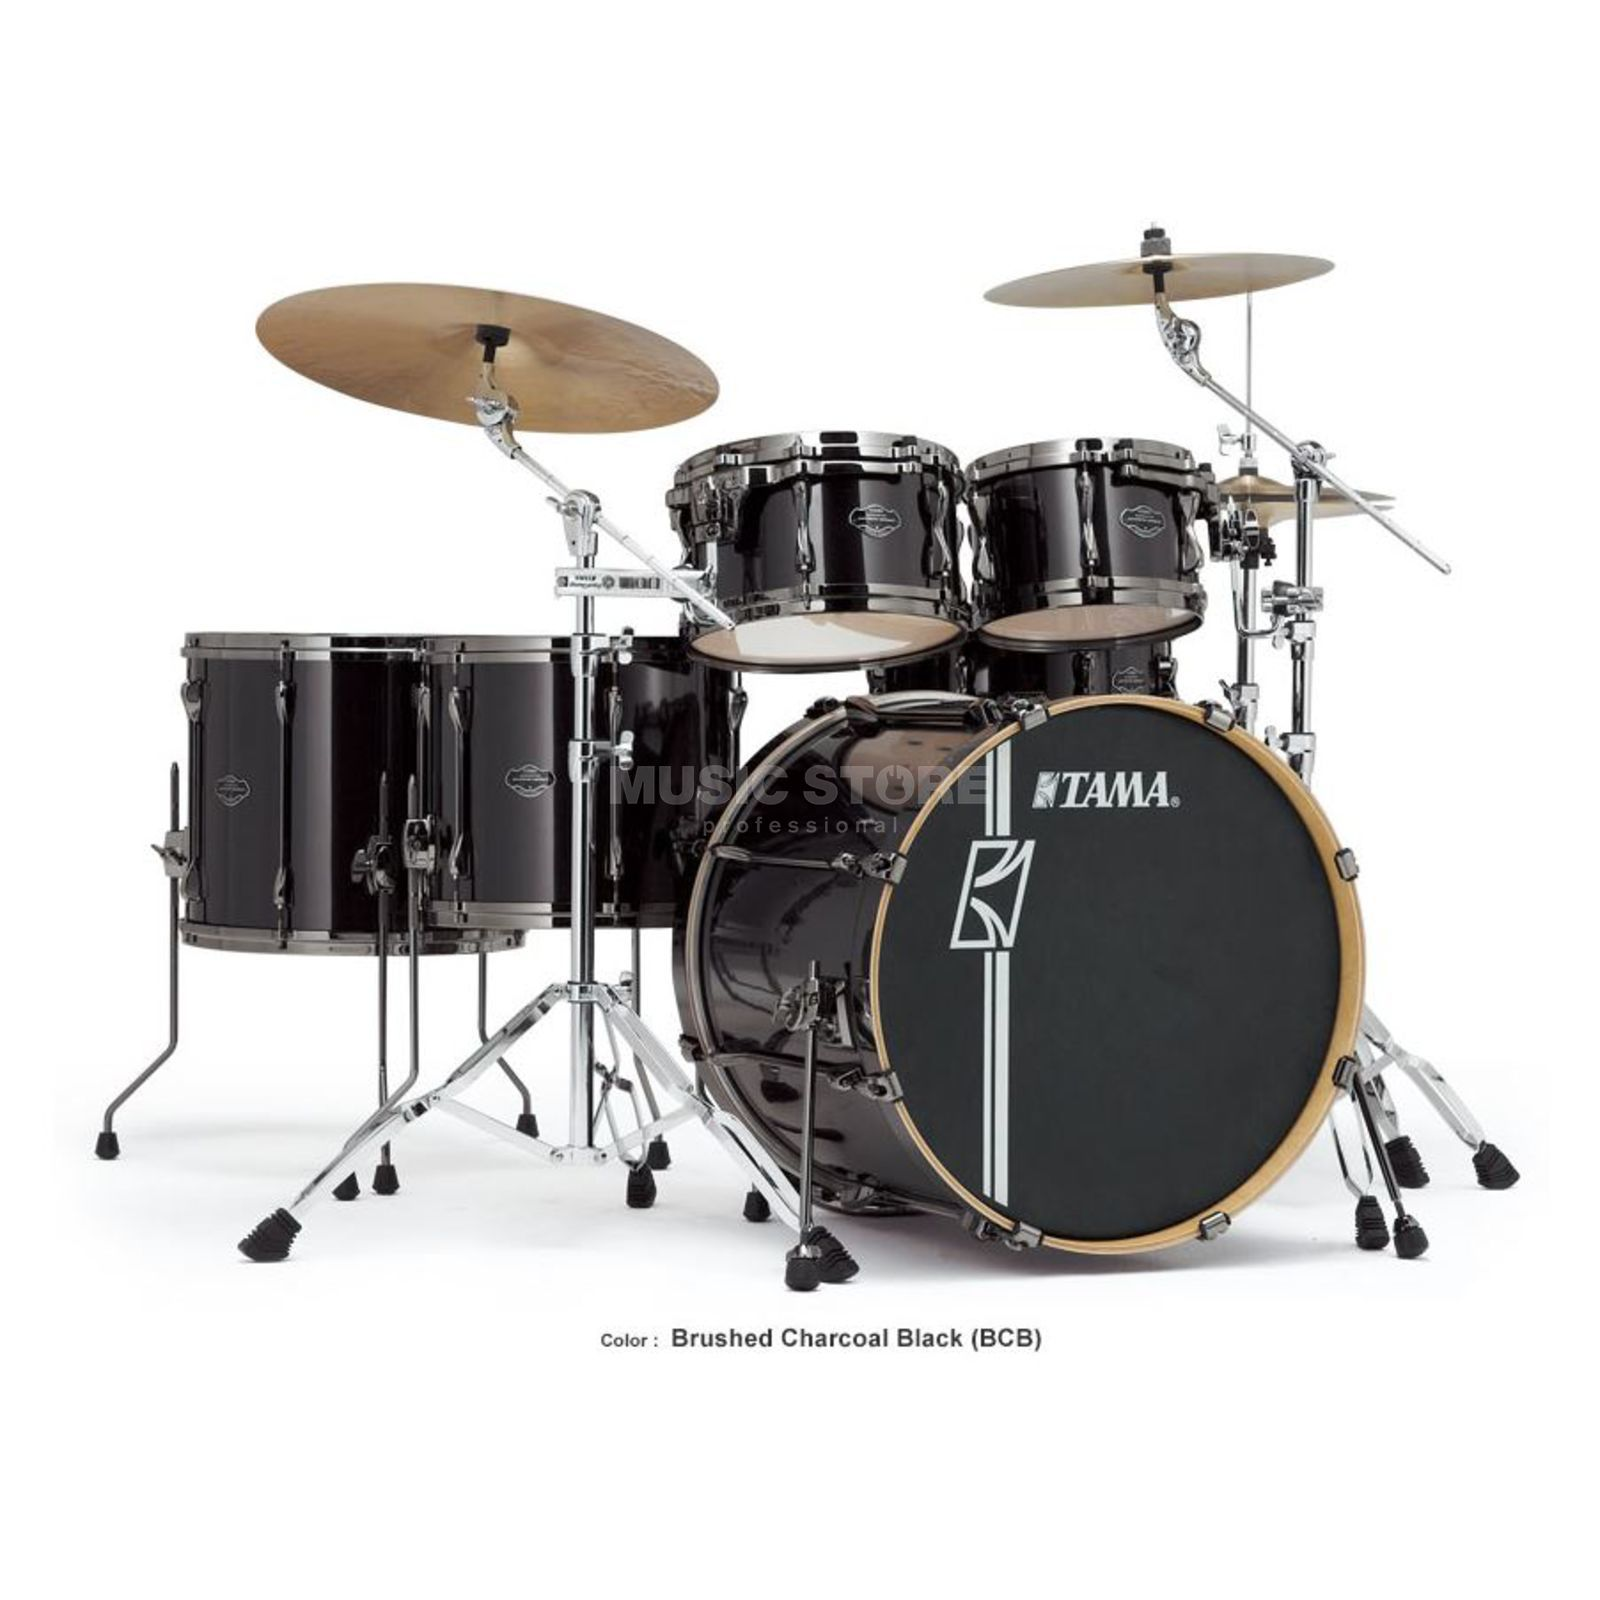 Tama Superstar HD Maple MK52HZBN, Brushed Charcoal Black, BCB Zdjęcie produktu